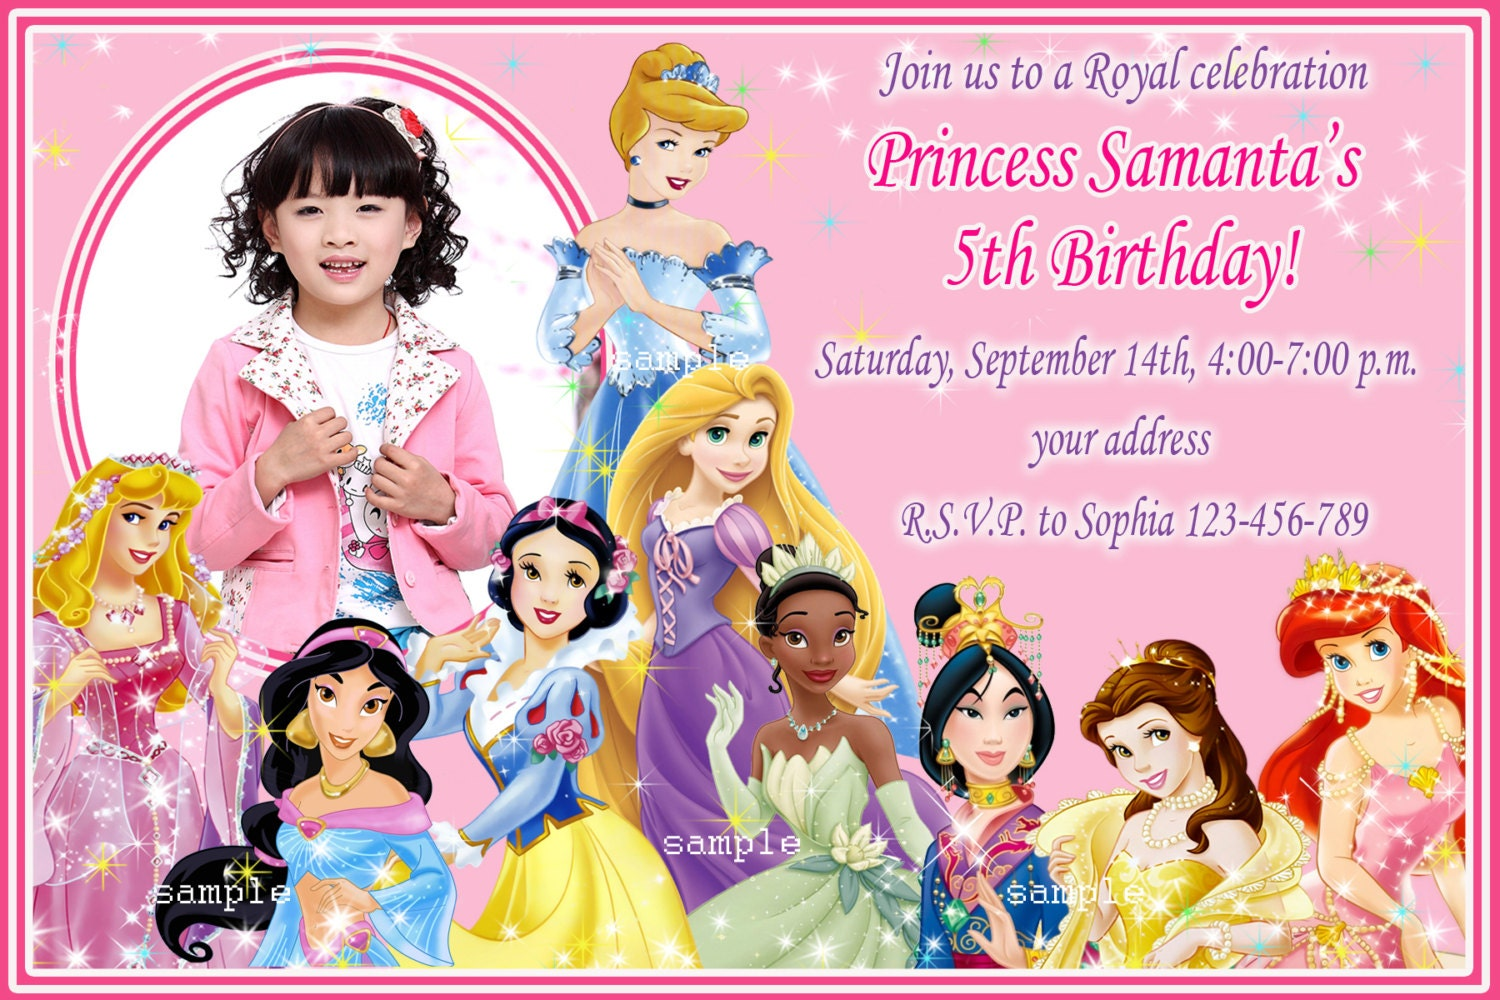 Disney Princess Party Invitations was very inspiring ideas you may choose for invitation ideas